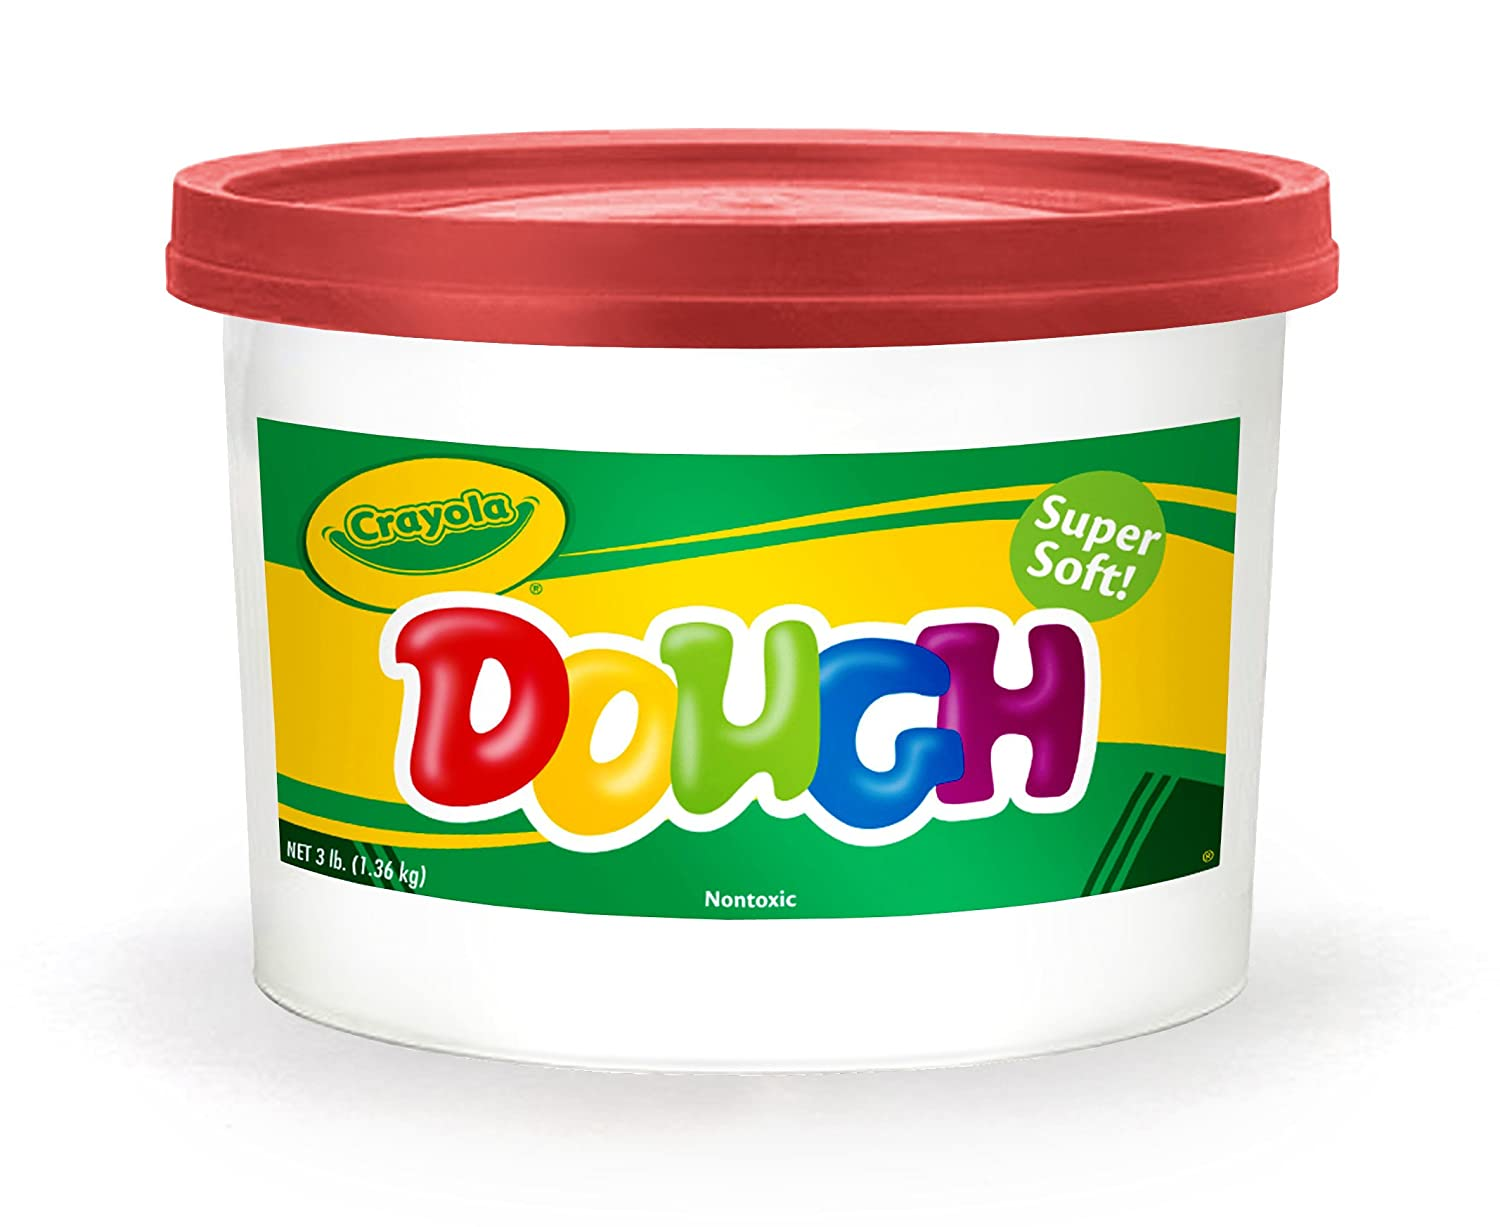 Crayola Dough 3-lb Bucket Red 57-0015-038